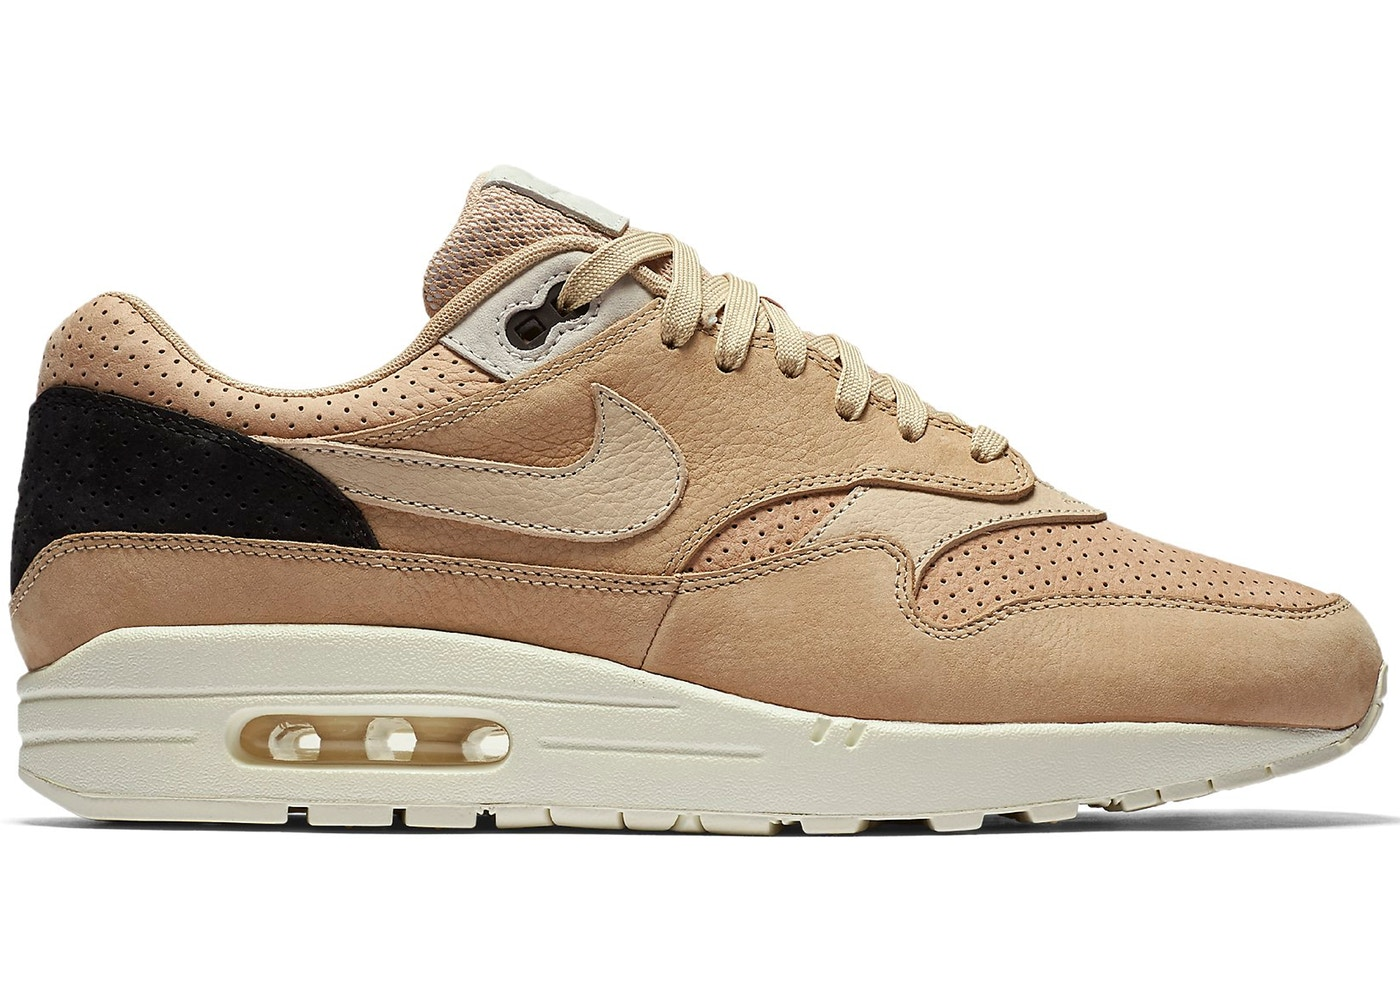 Max Mushroom Mushroom 1 1 1 Pinnacle Air Max Max Air Air Pinnacle Pinnacle fY7y6gbv